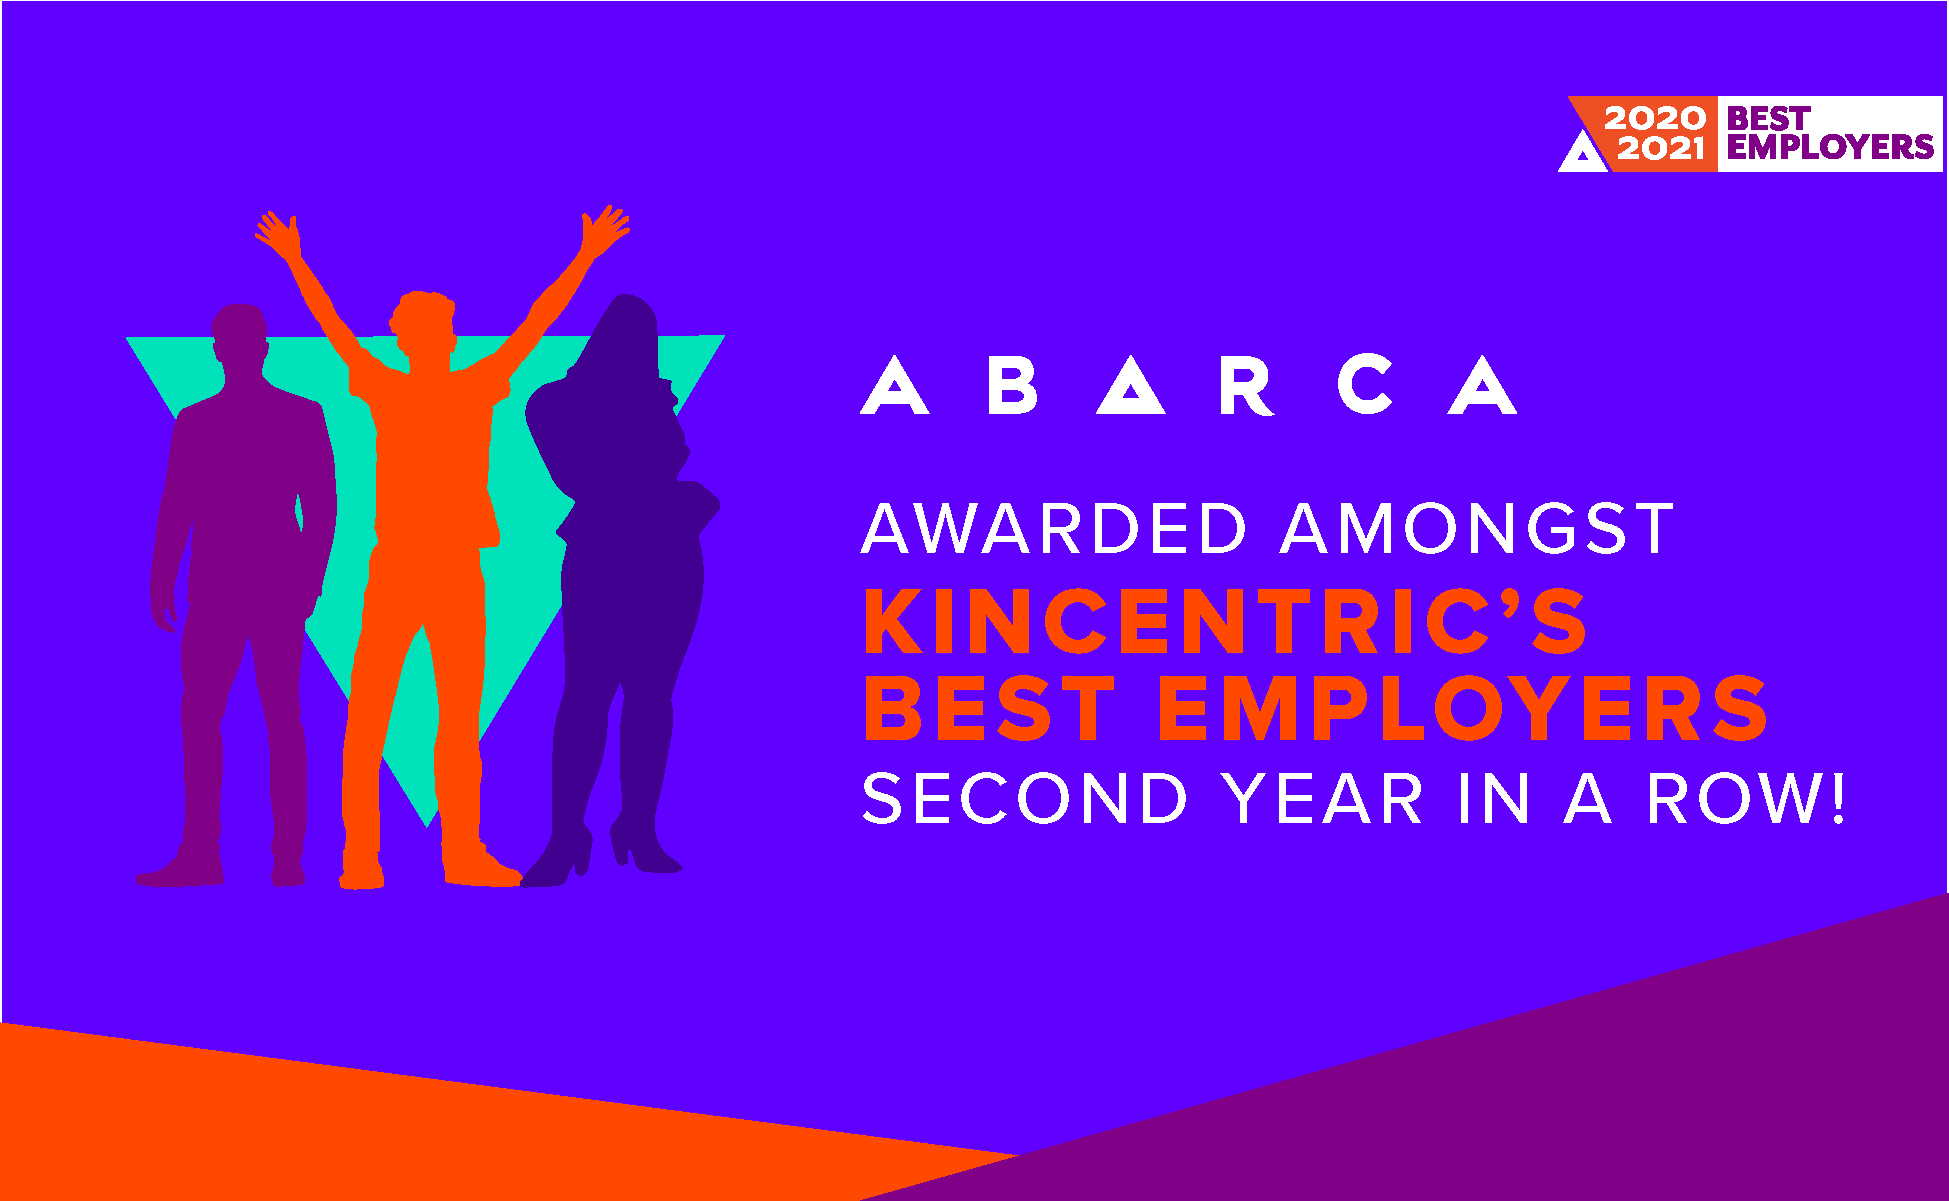 Abarca Health - Names Best Employers by Kincentric for the second year in a row